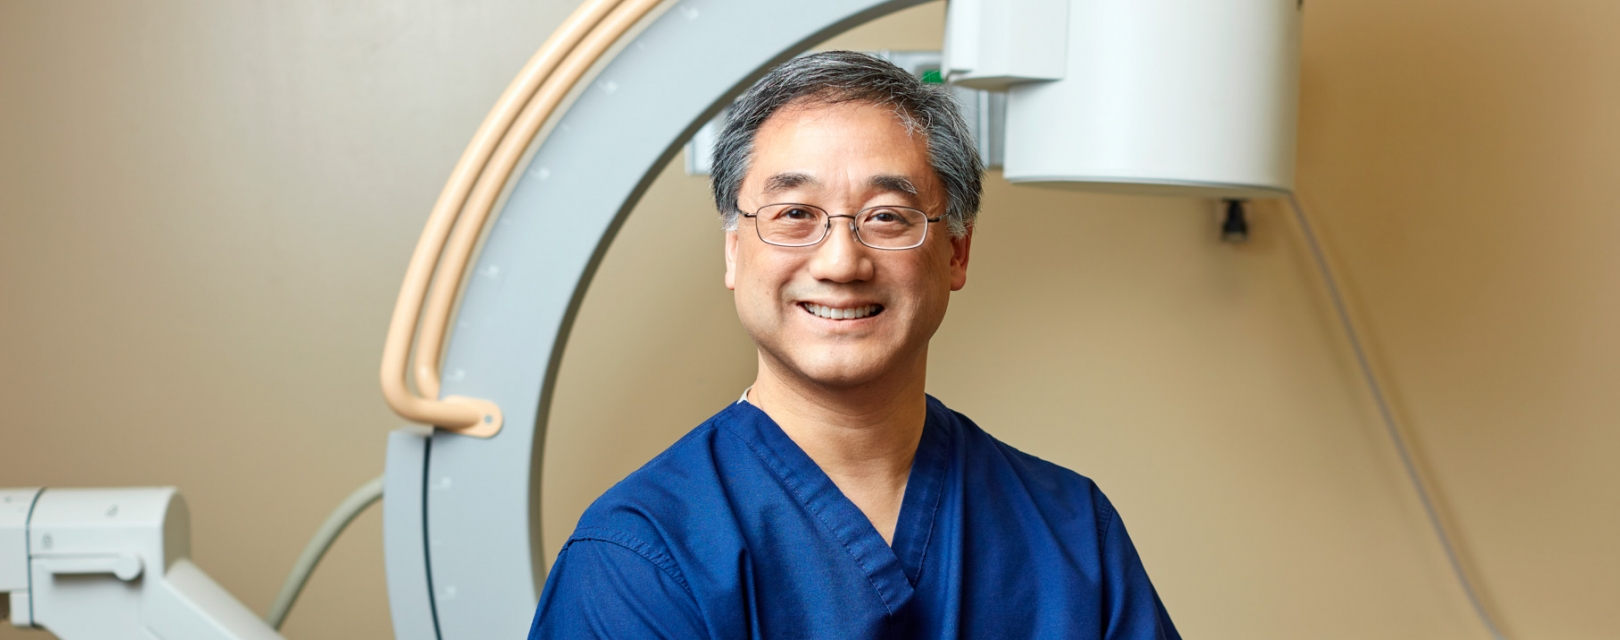 Joseph Wang, M.D. - Jefferson City Medical Group